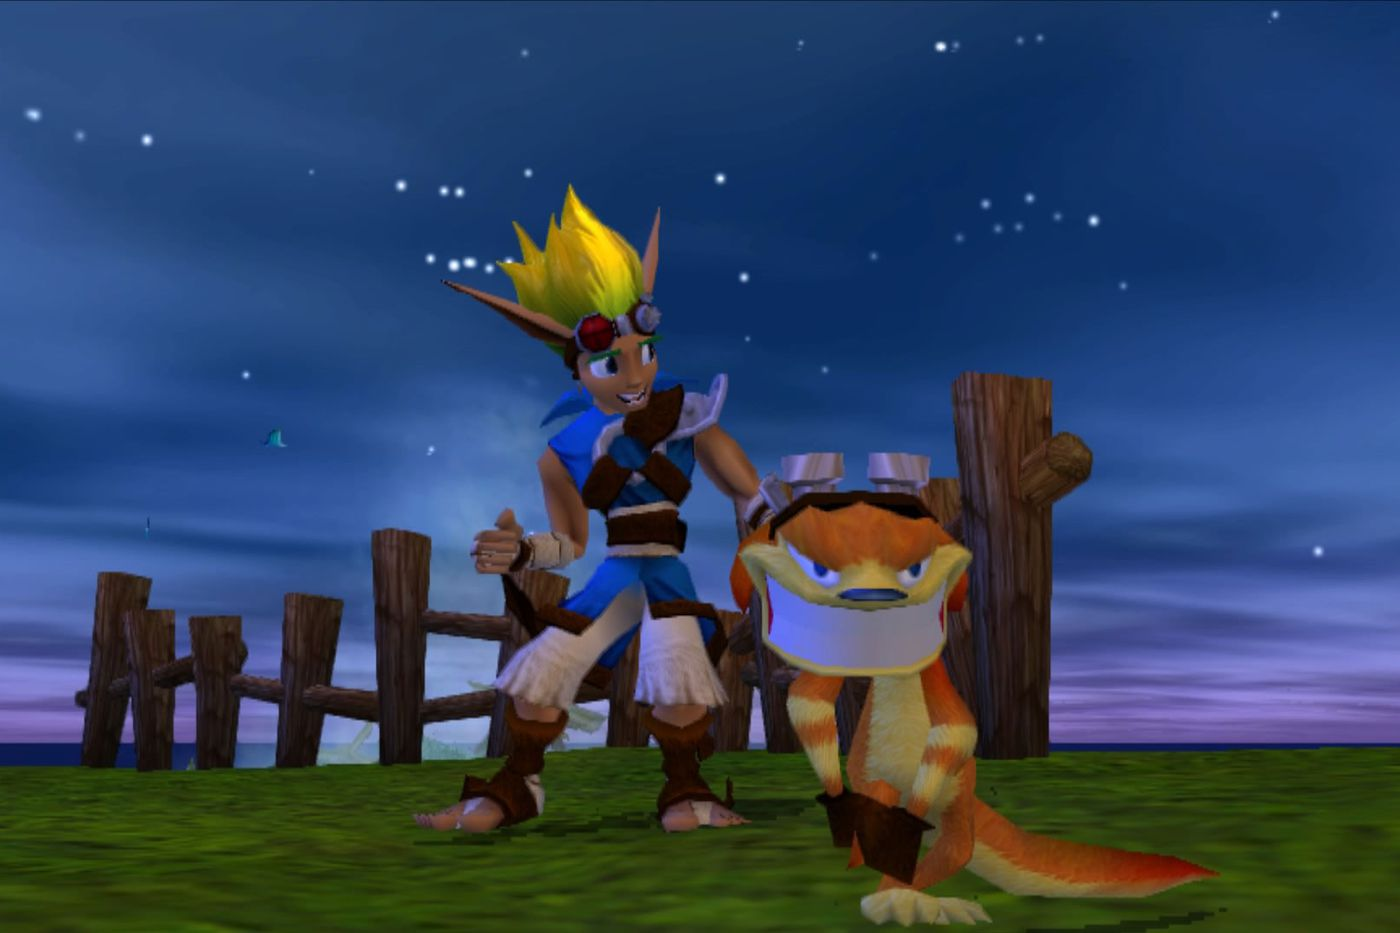 PS2 Jak and Daxter games get physical release on PS4 - Polygon